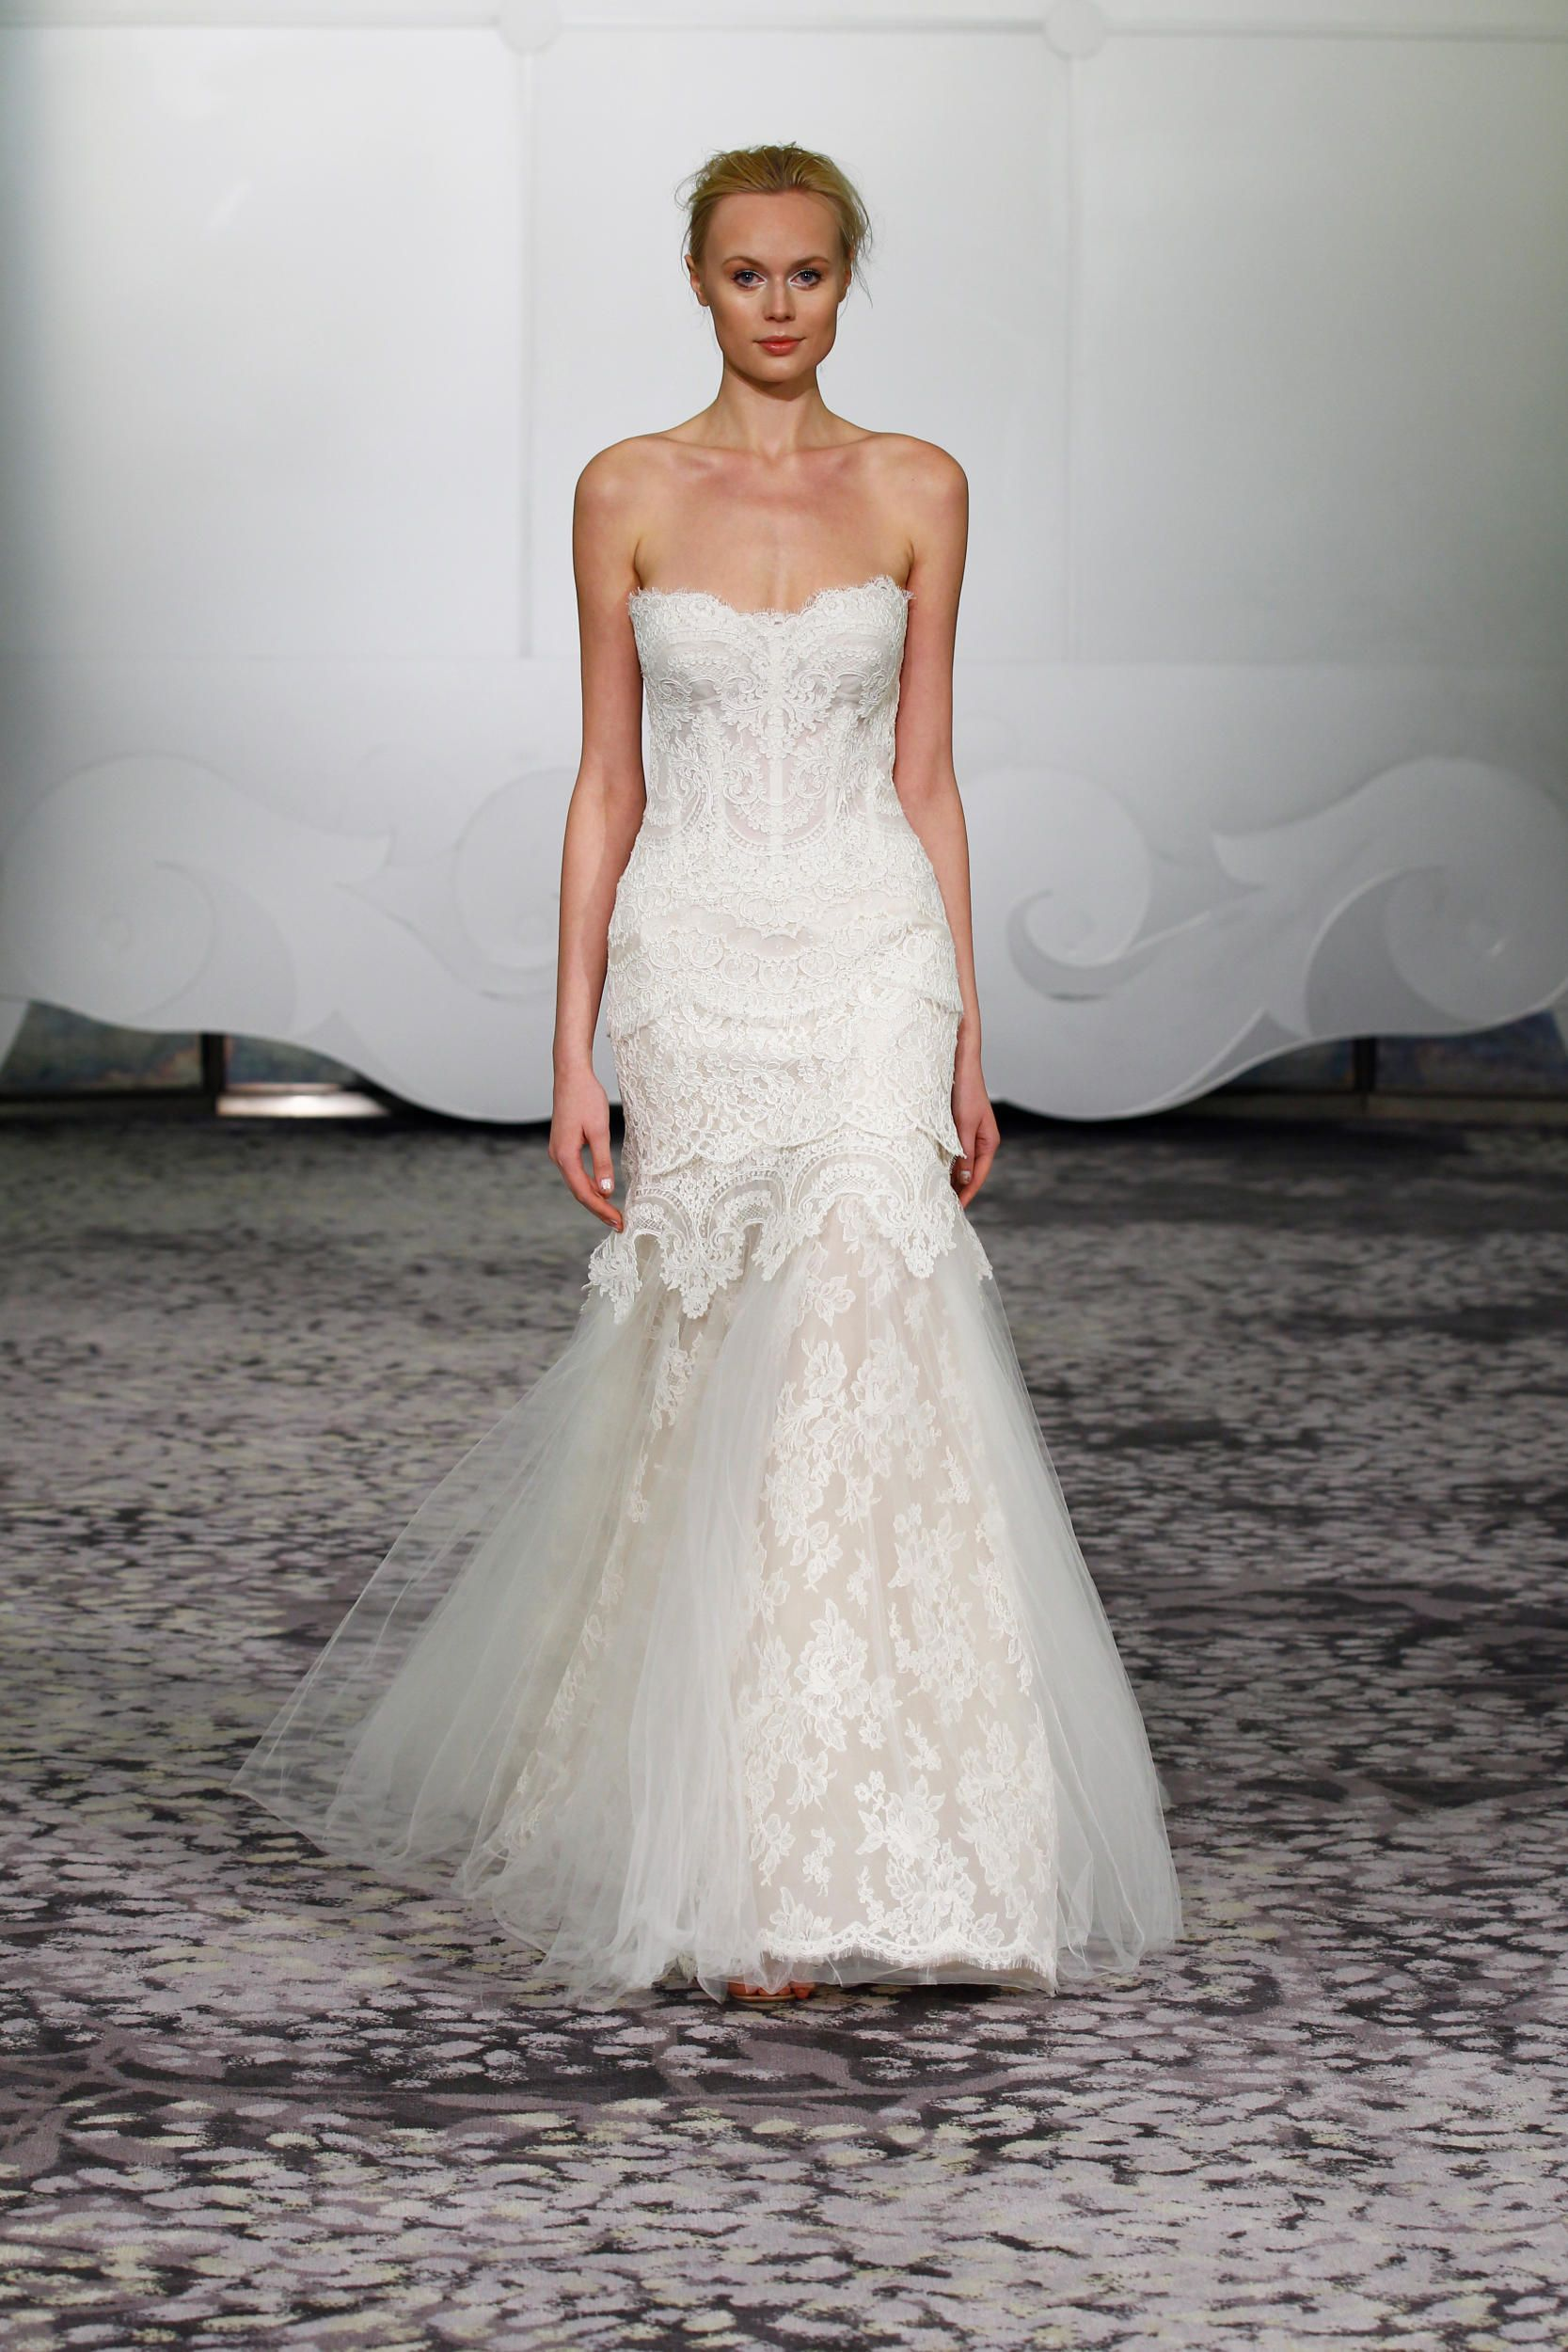 The 10 Biggest Bridal Trends for Spring 2016 | Overalls, Wedding ...